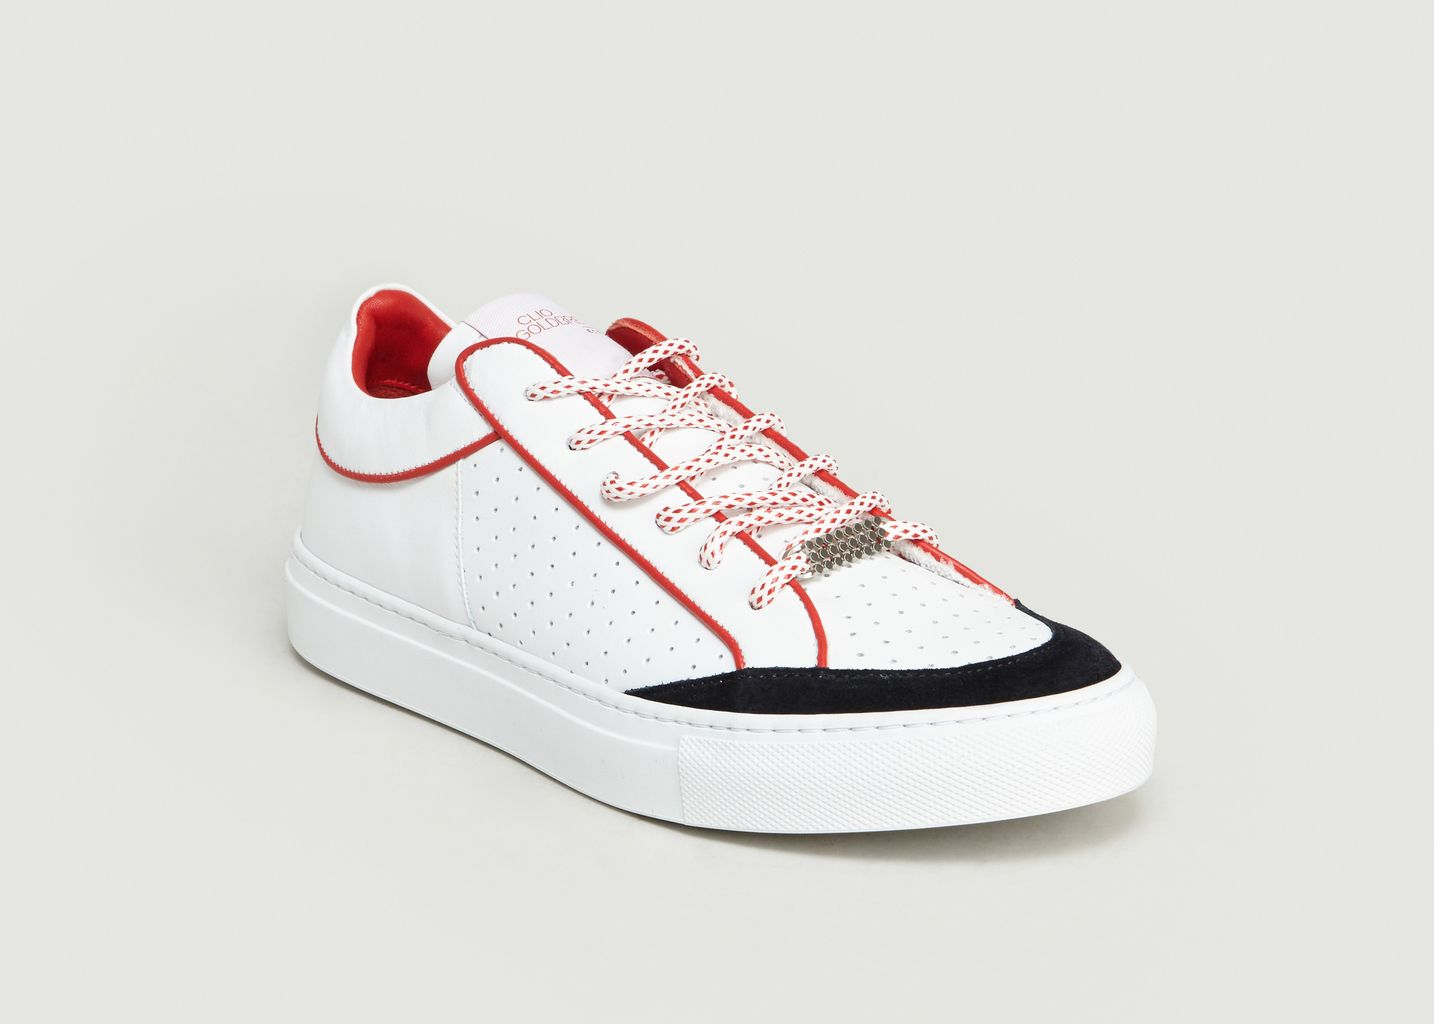 Goldbrenner Clio Blanc Achille Sailor L'exception Sneakers ZF4fO8ncW